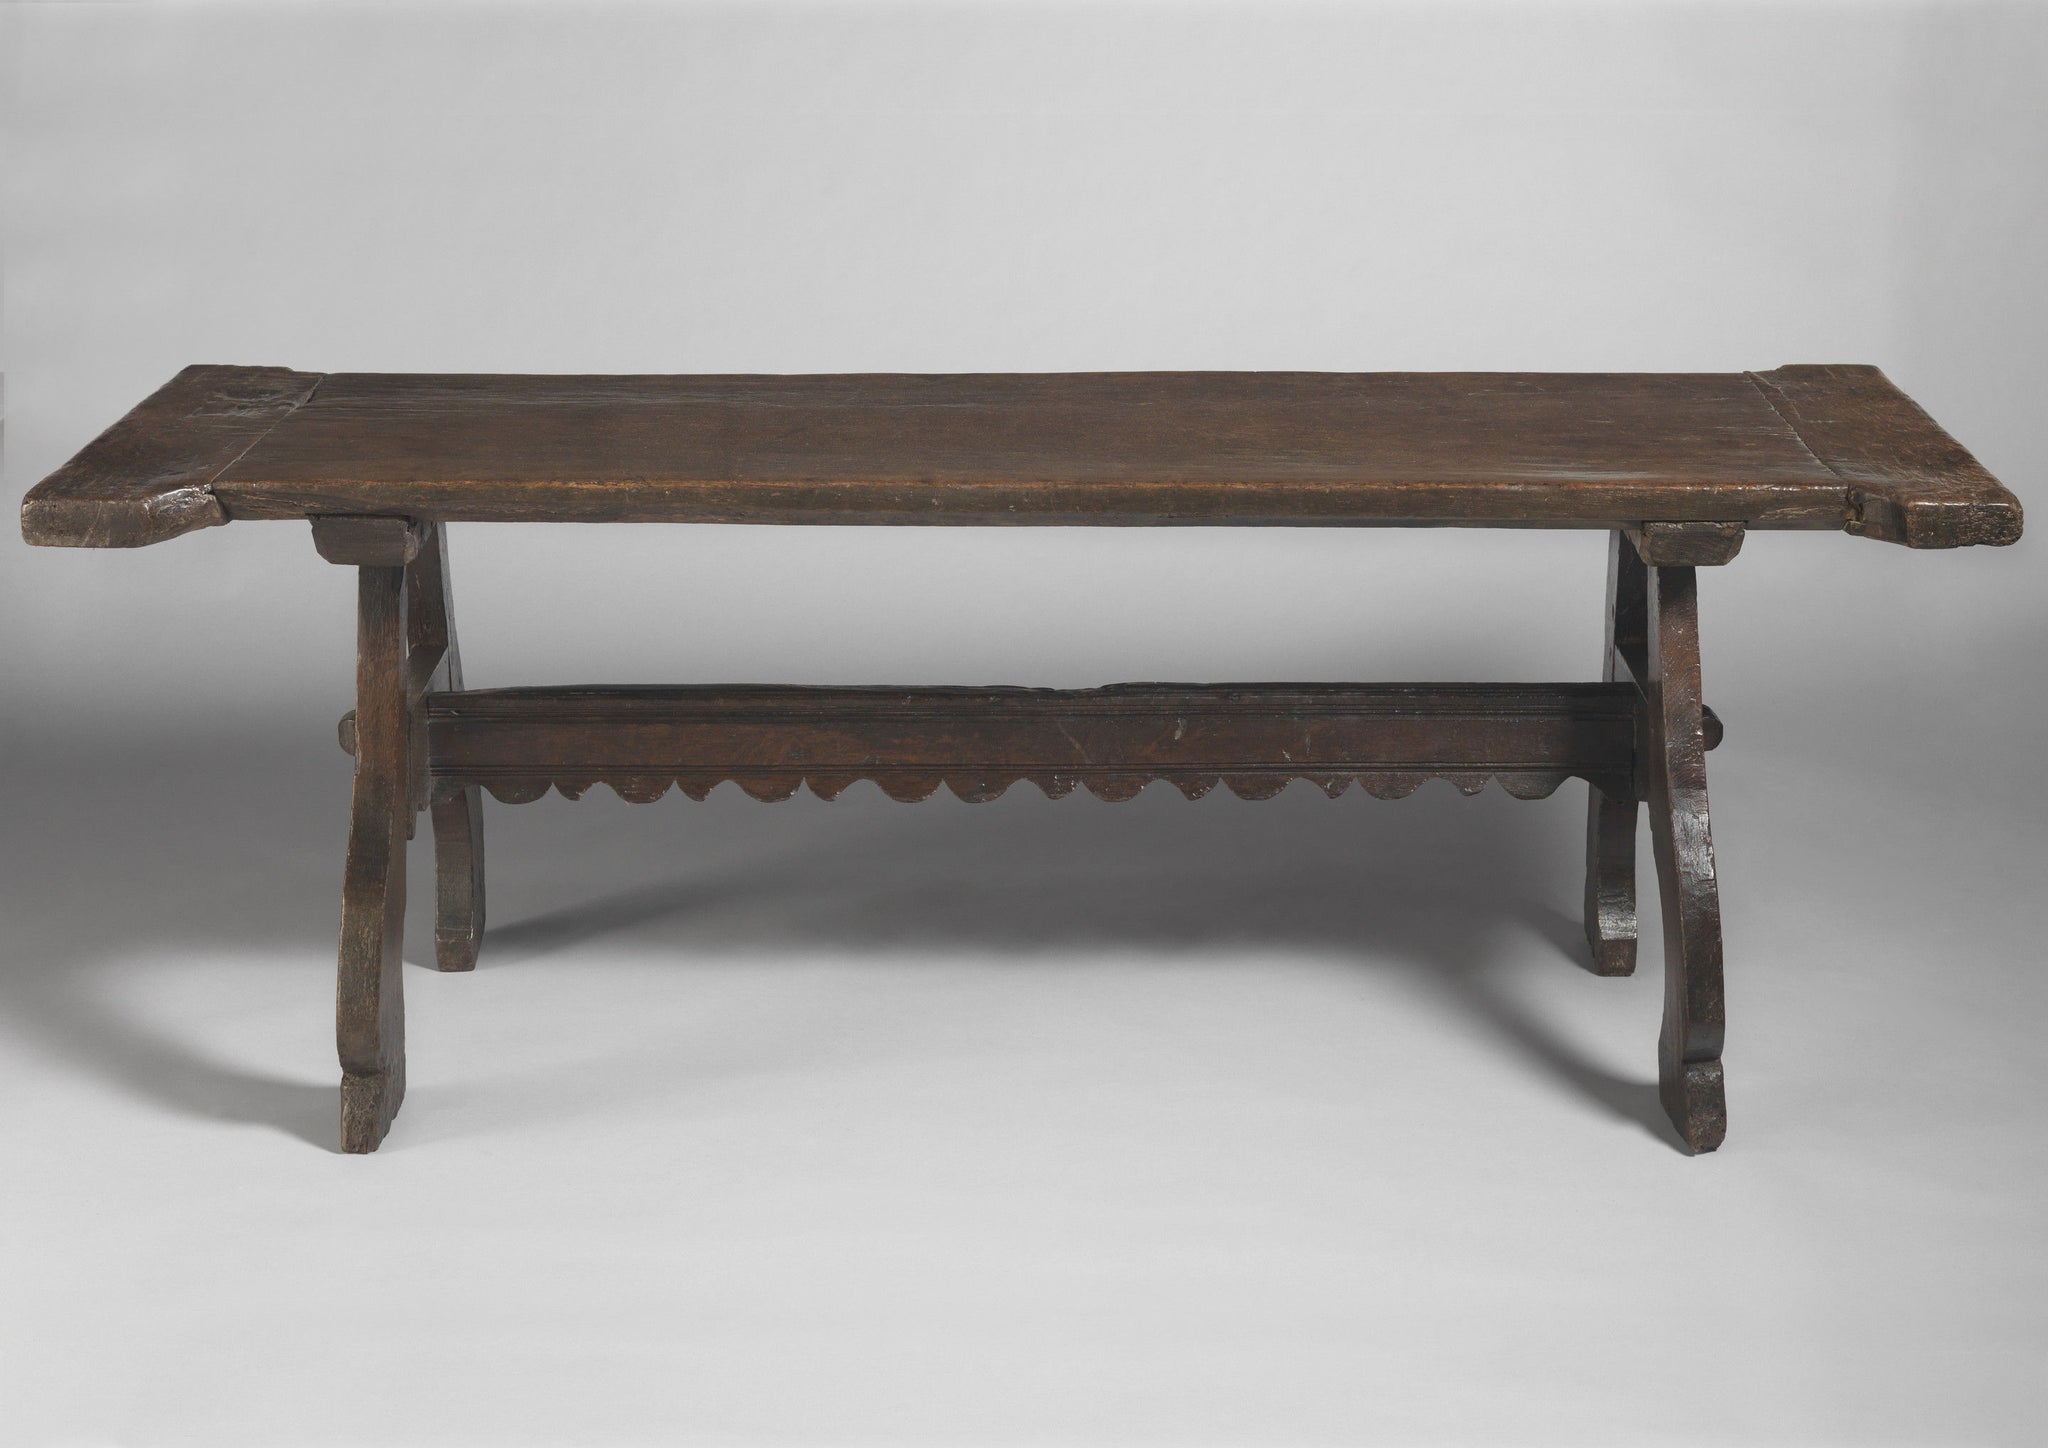 Sculptural Early 'I' Form Tavern Table